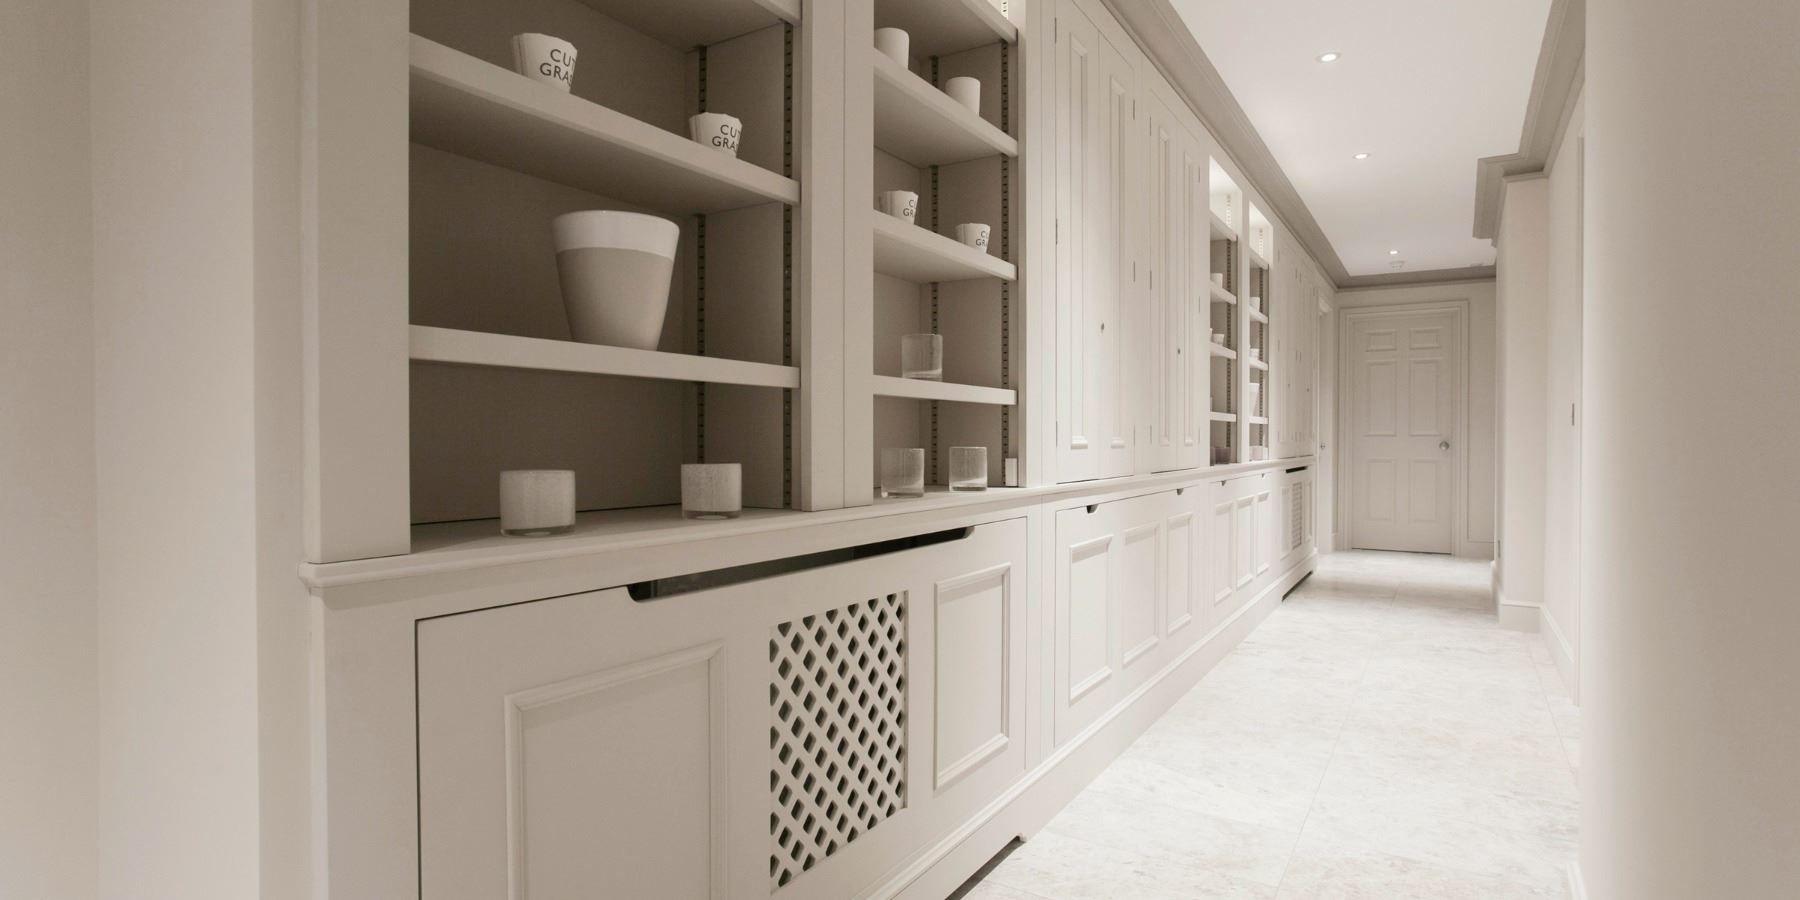 Burlanes Interiors - Burlanes custom made fitted furniture